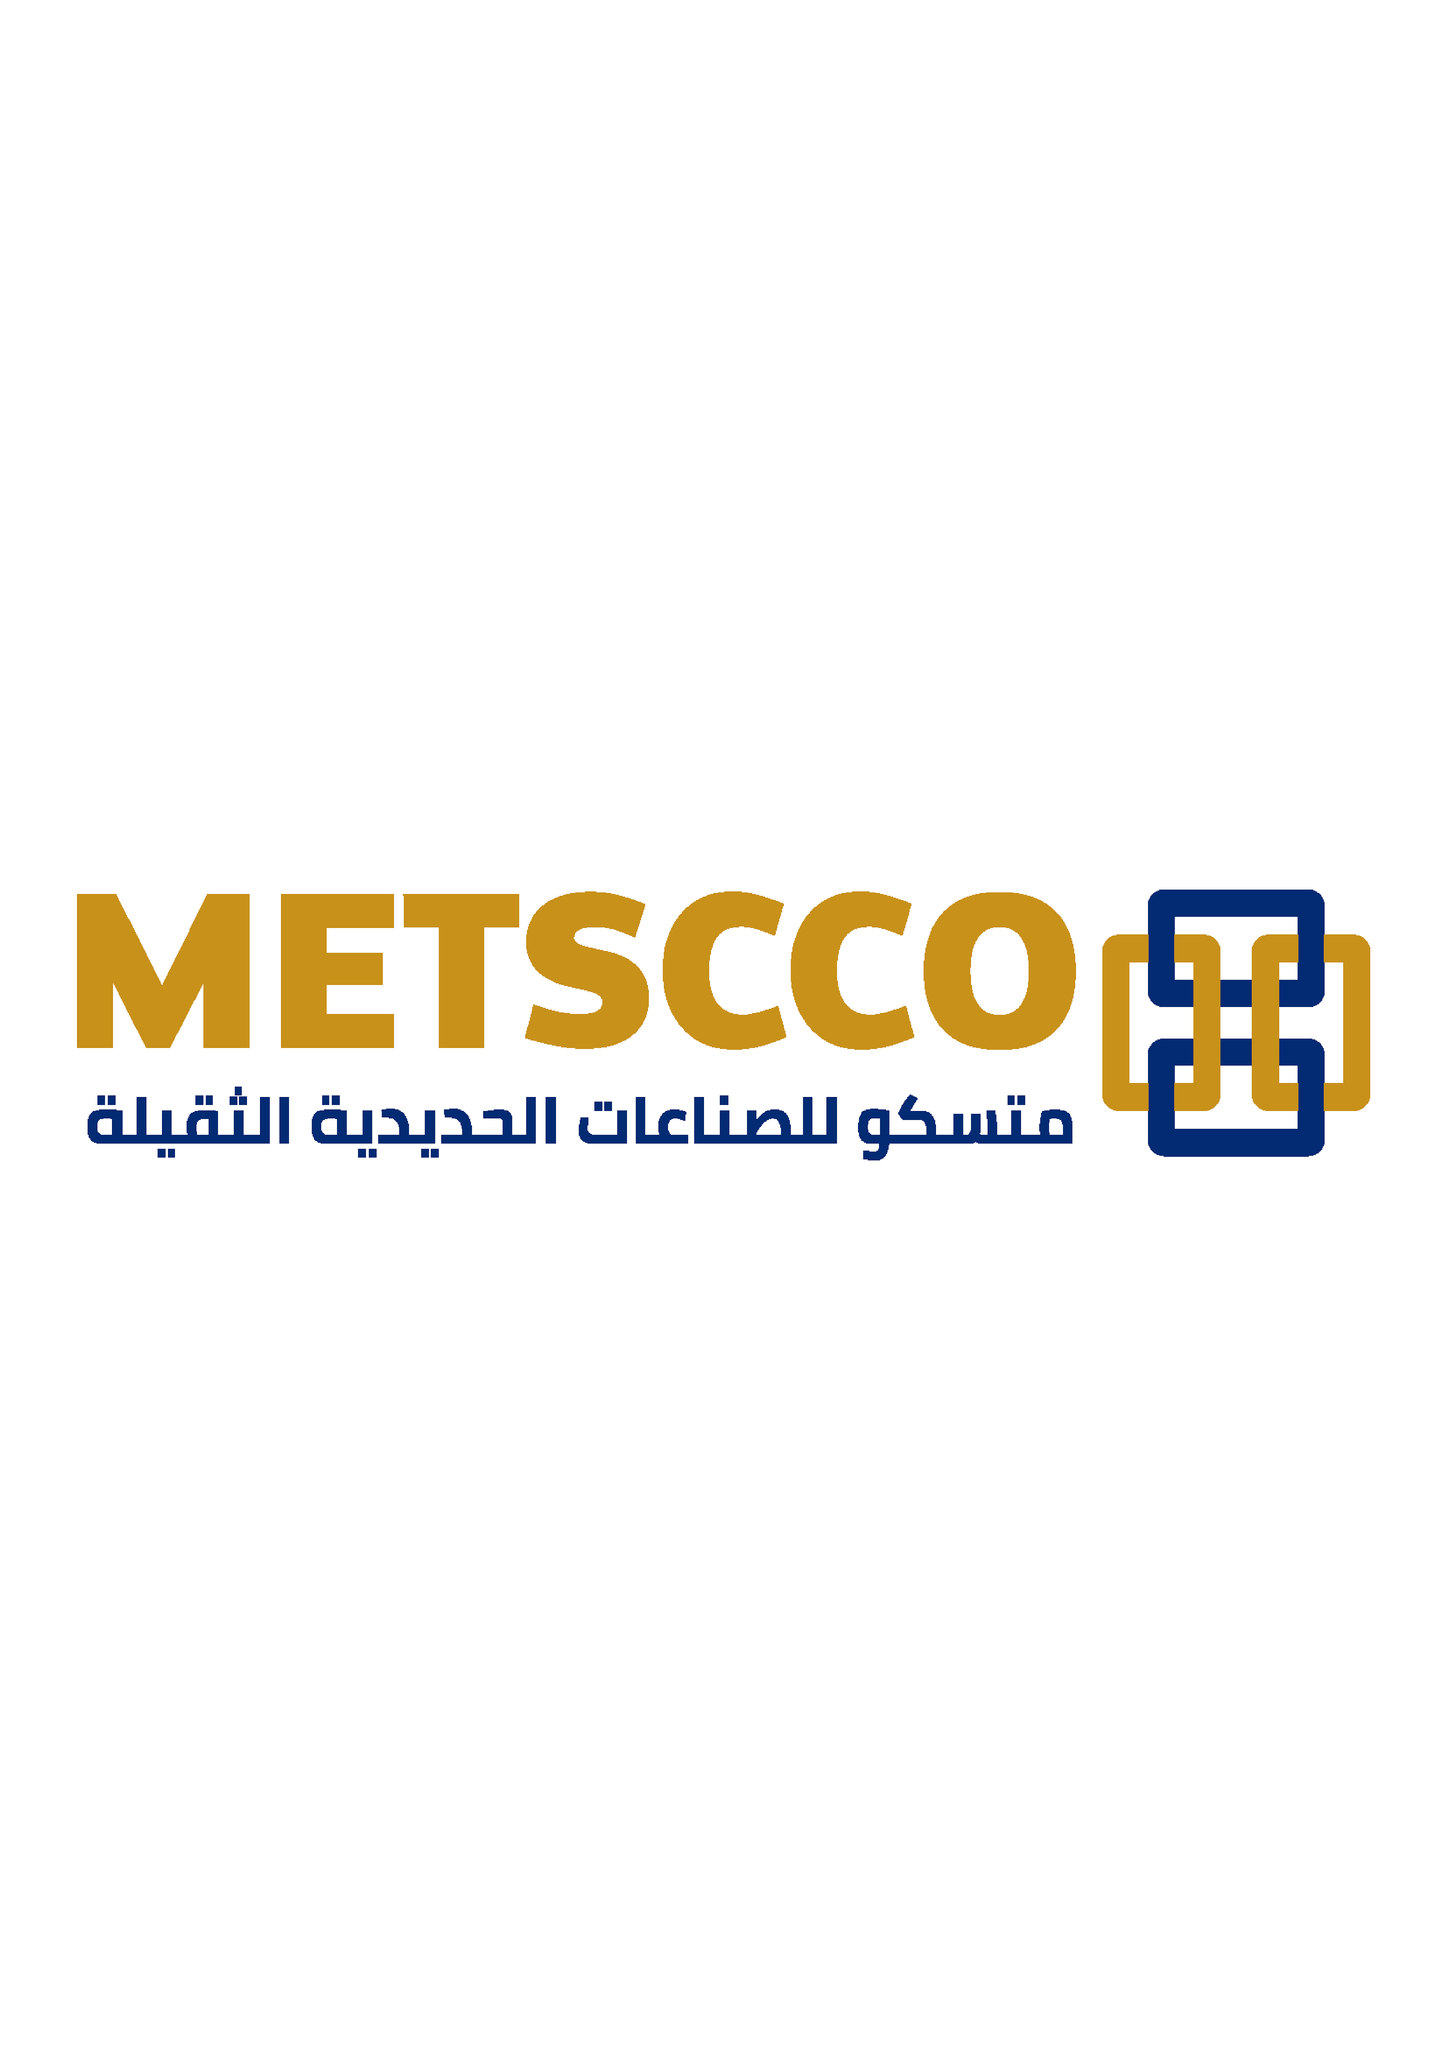 METSCO HEAVY STEEL INDUSTRIES CO., LTD.